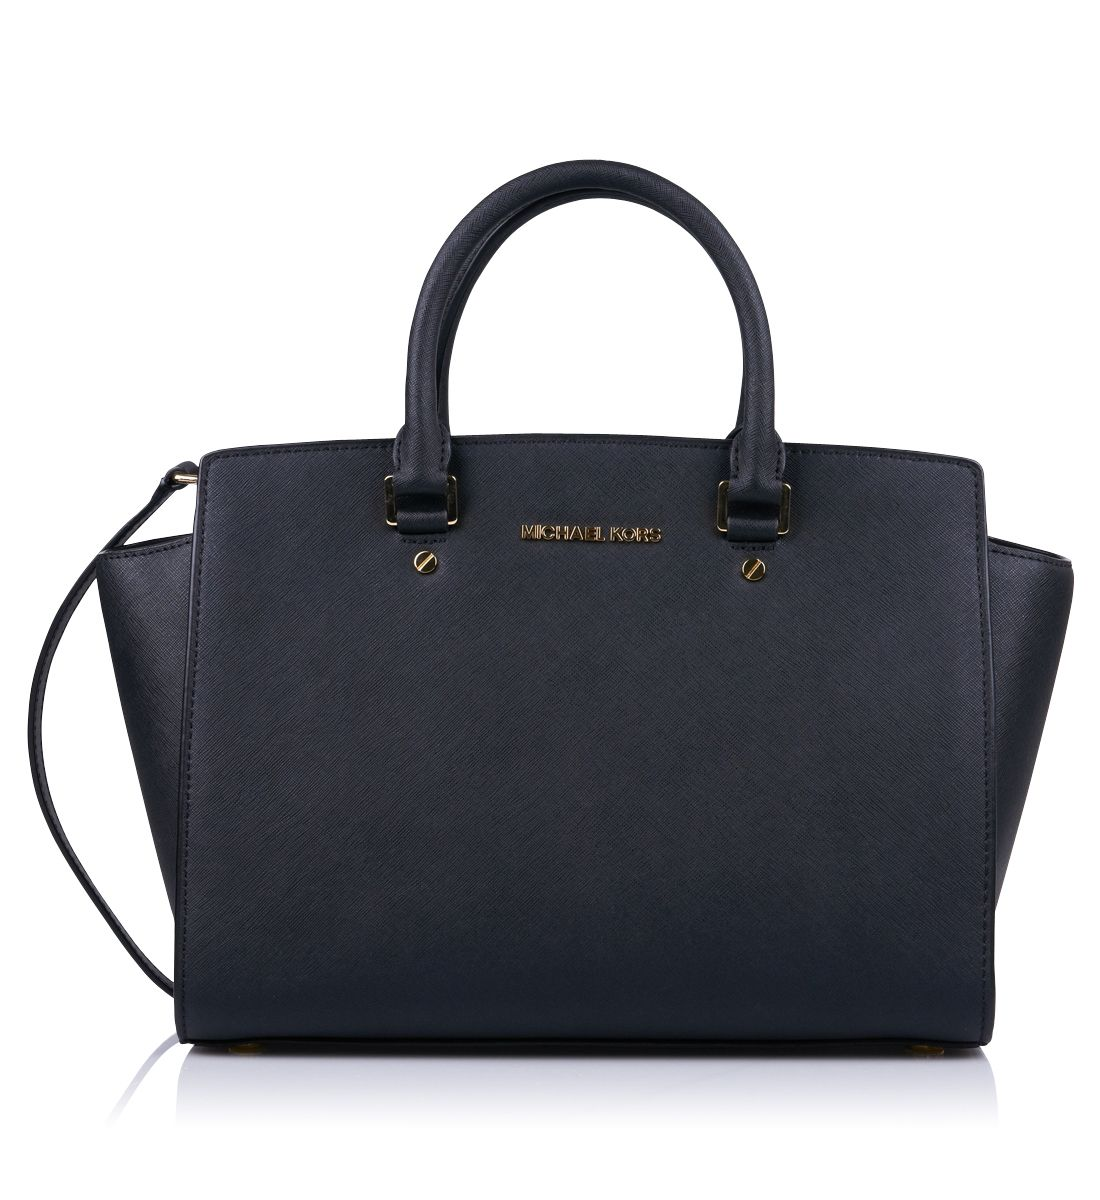 michael khors handbag black sac main noir selma. Black Bedroom Furniture Sets. Home Design Ideas